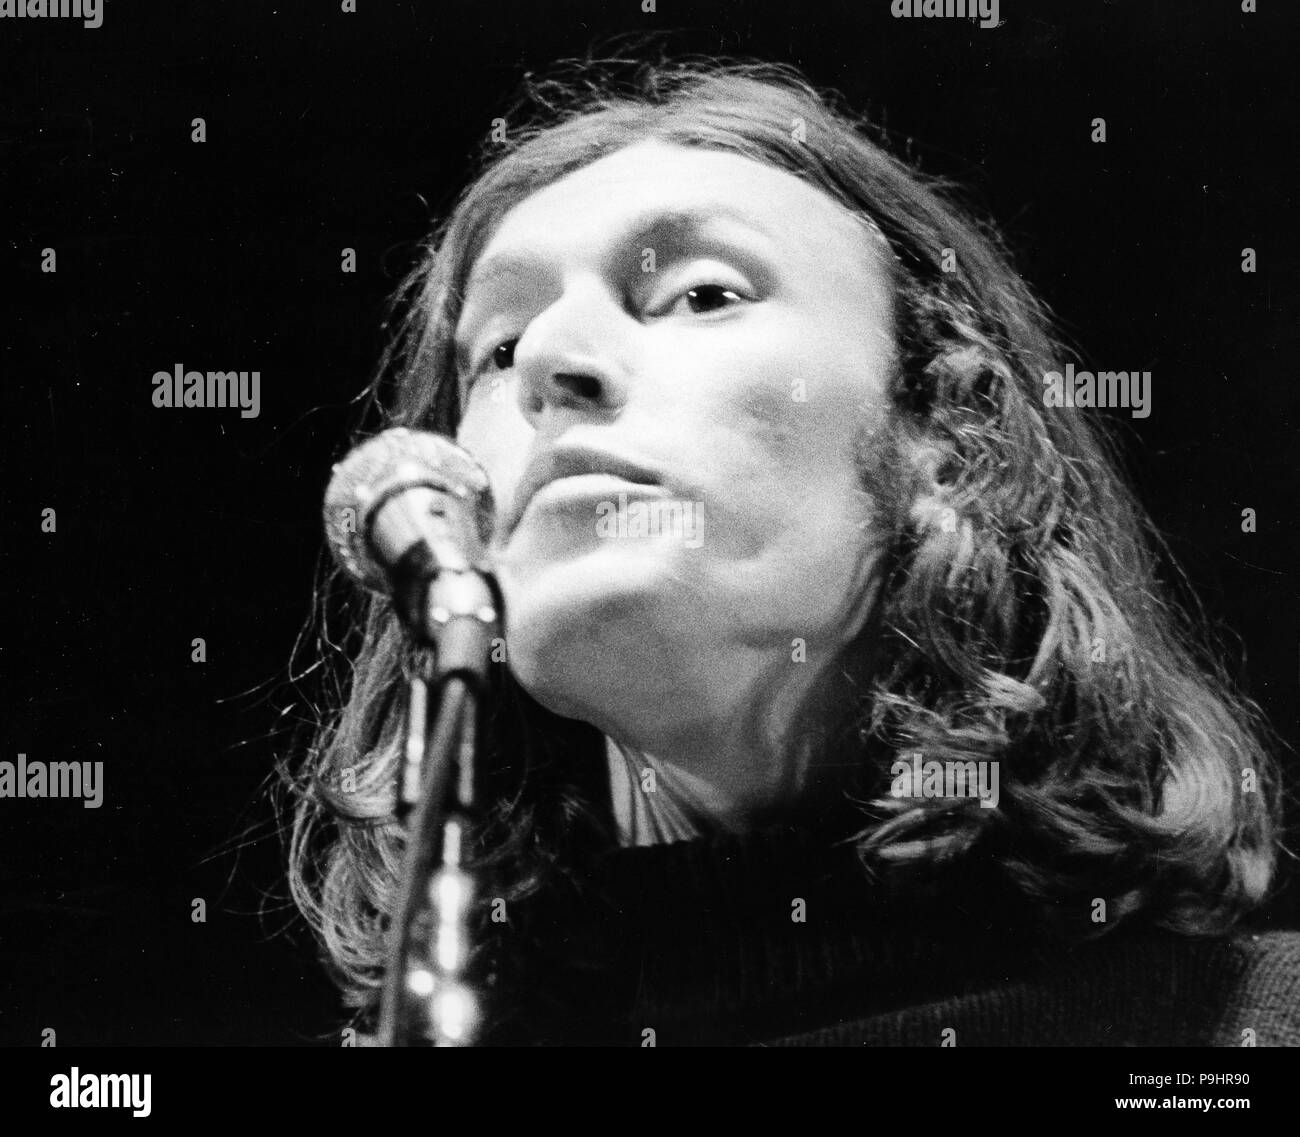 steve winwood, 60s - Stock Image